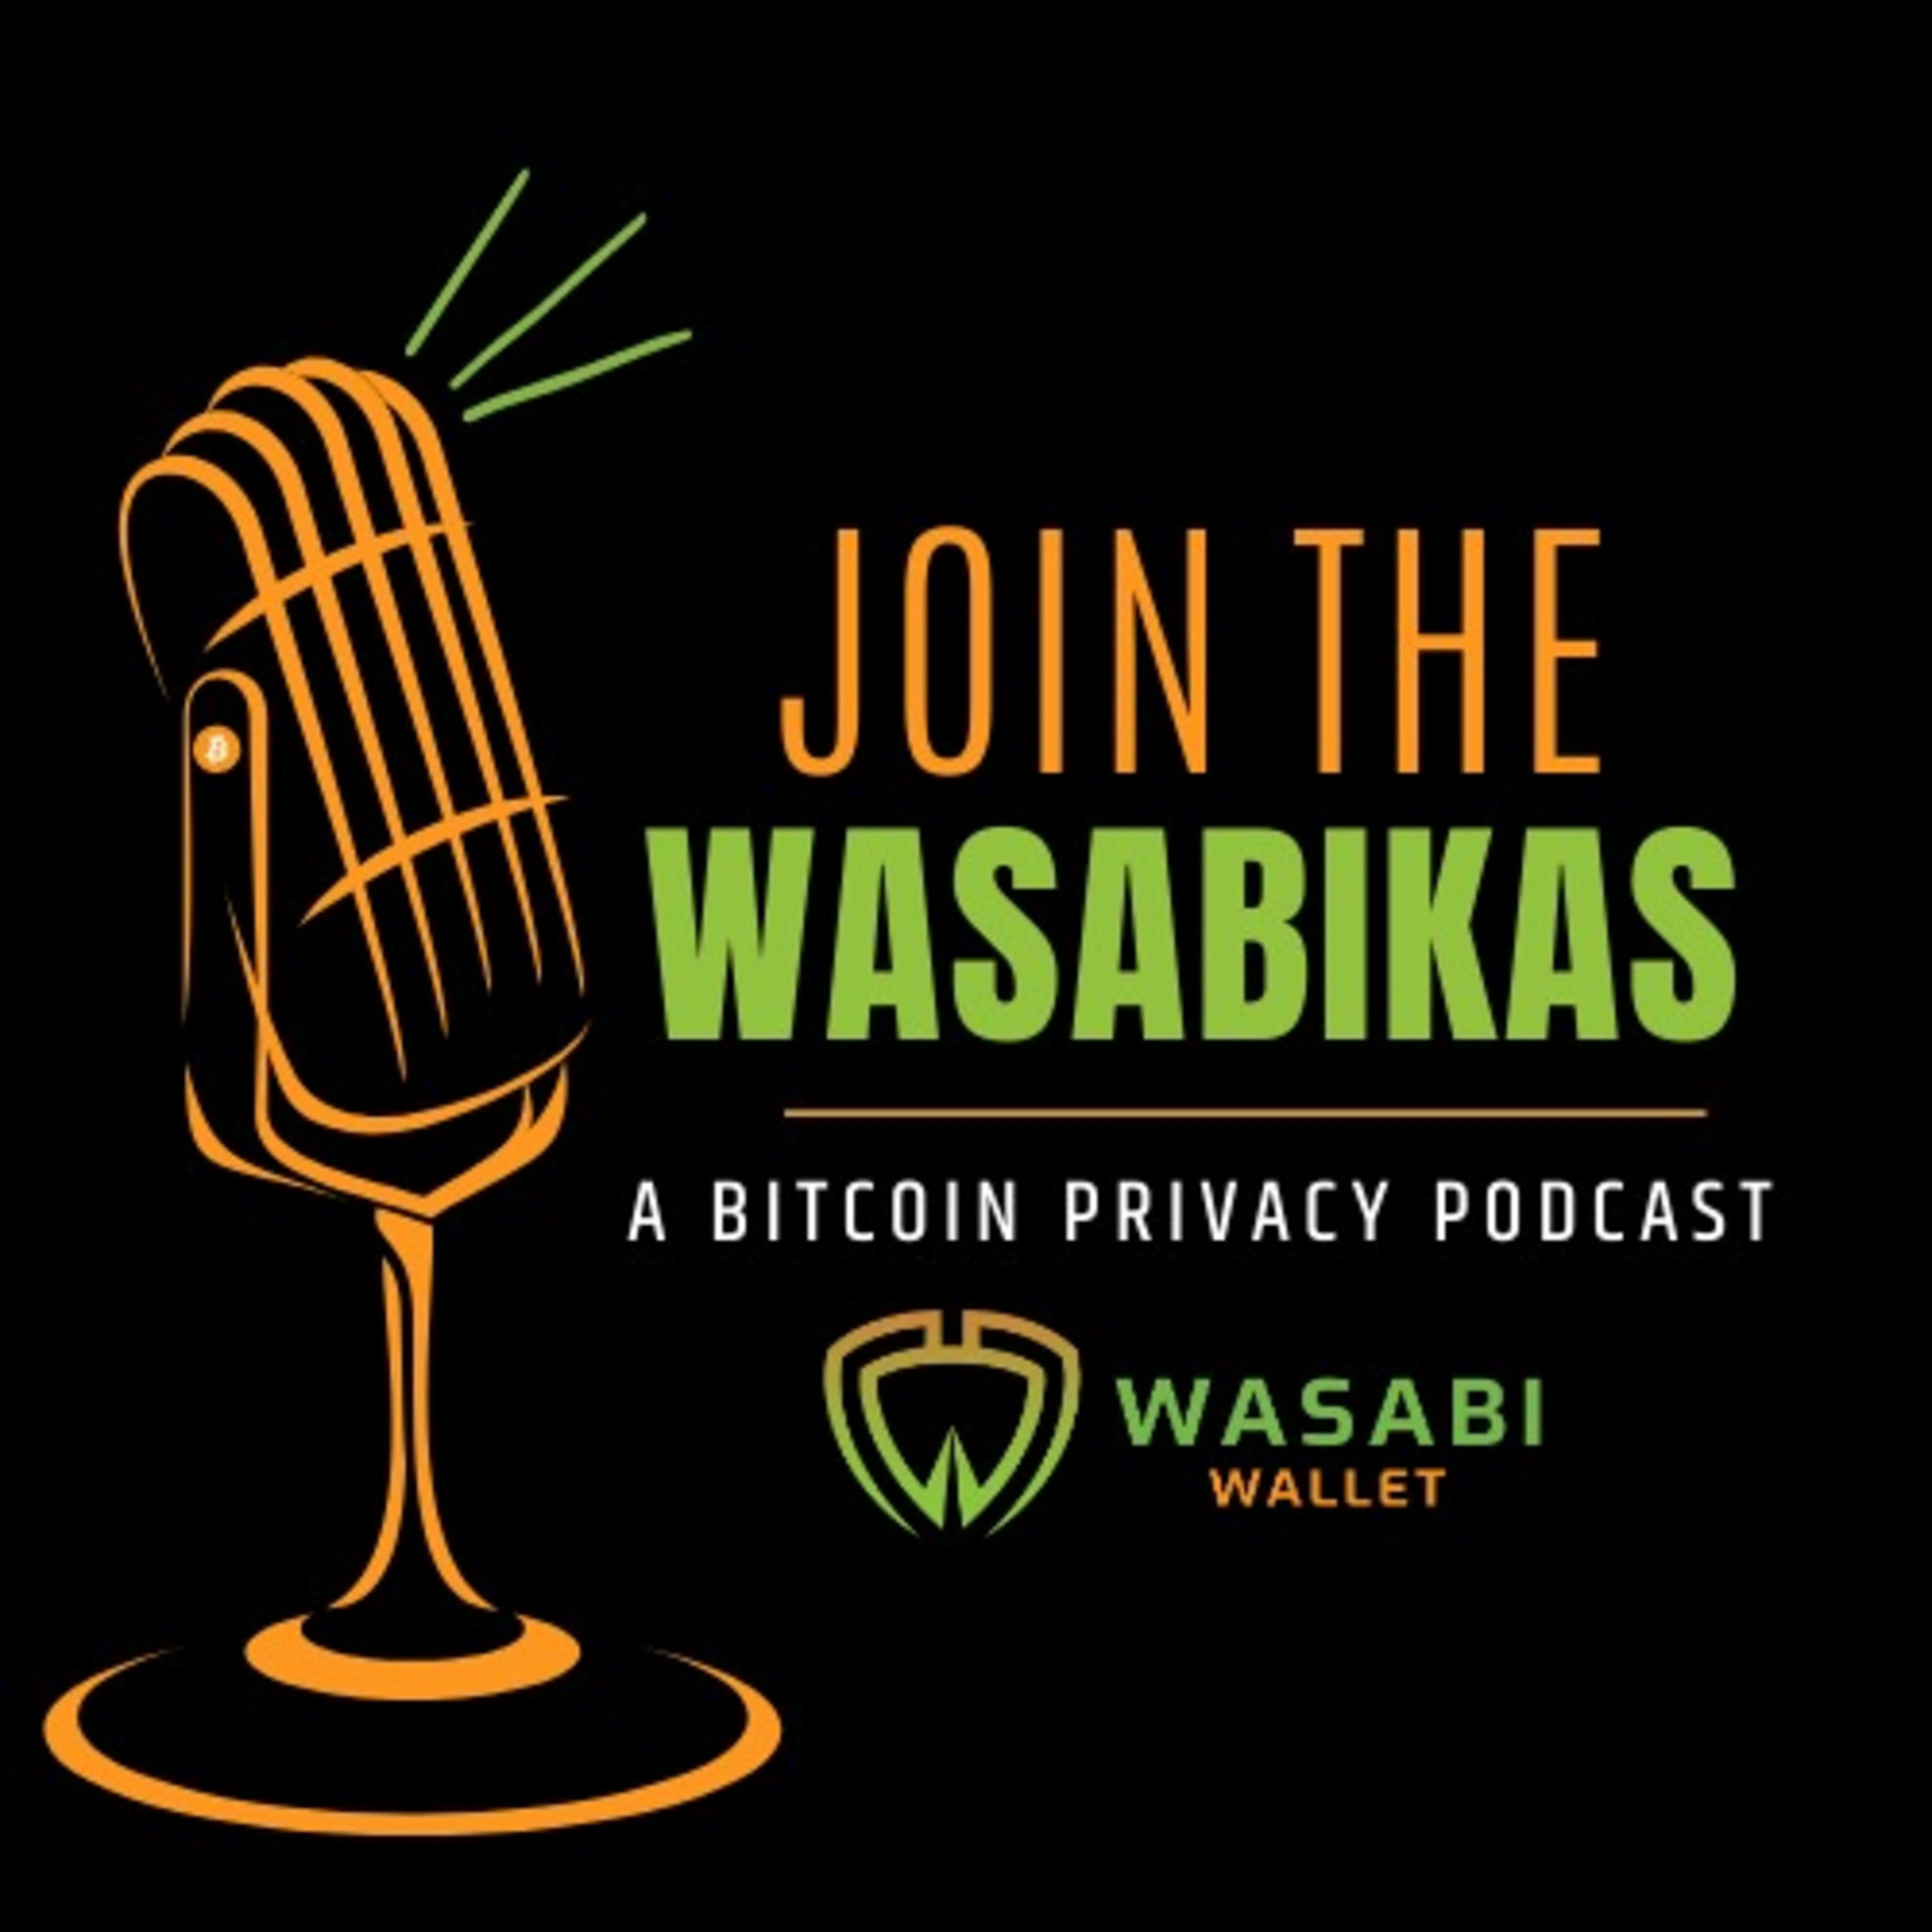 Join the Wasabikas - a Bitcoin Privacy Podcast